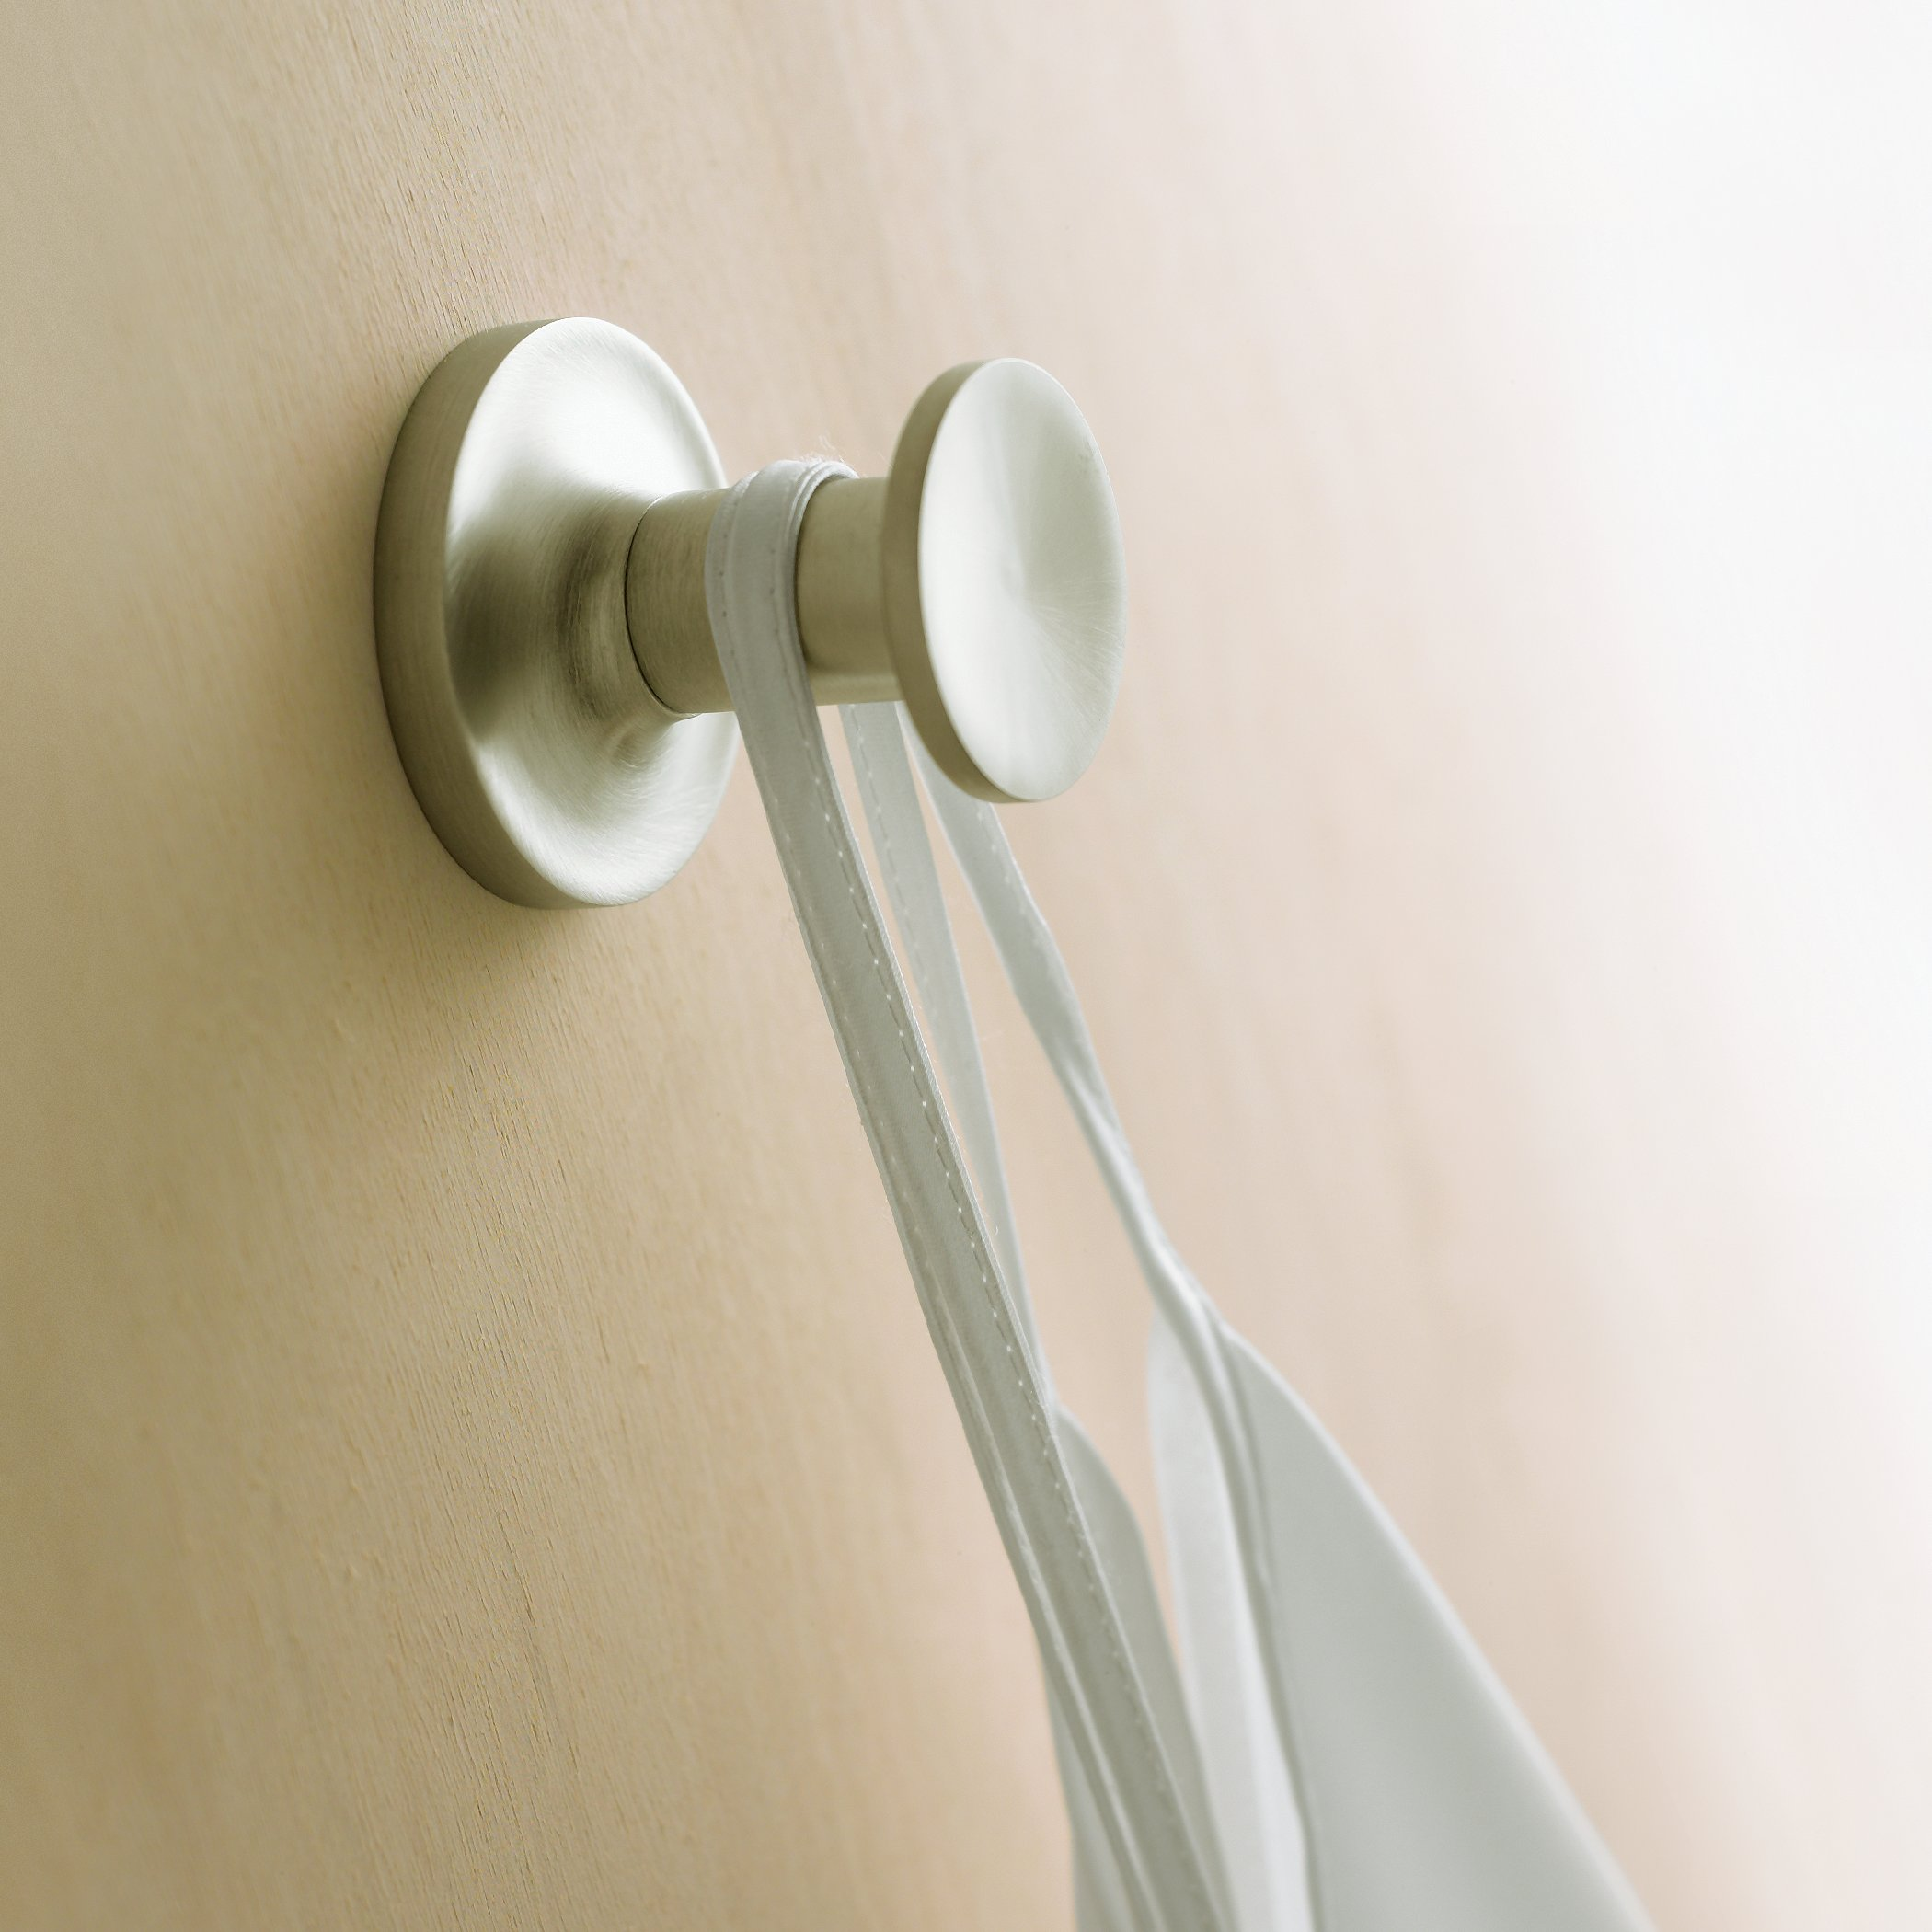 KOHLER K-14443-BN Purist Robe Hook, Vibrant Brushed Nickel by Kohler (Image #3)